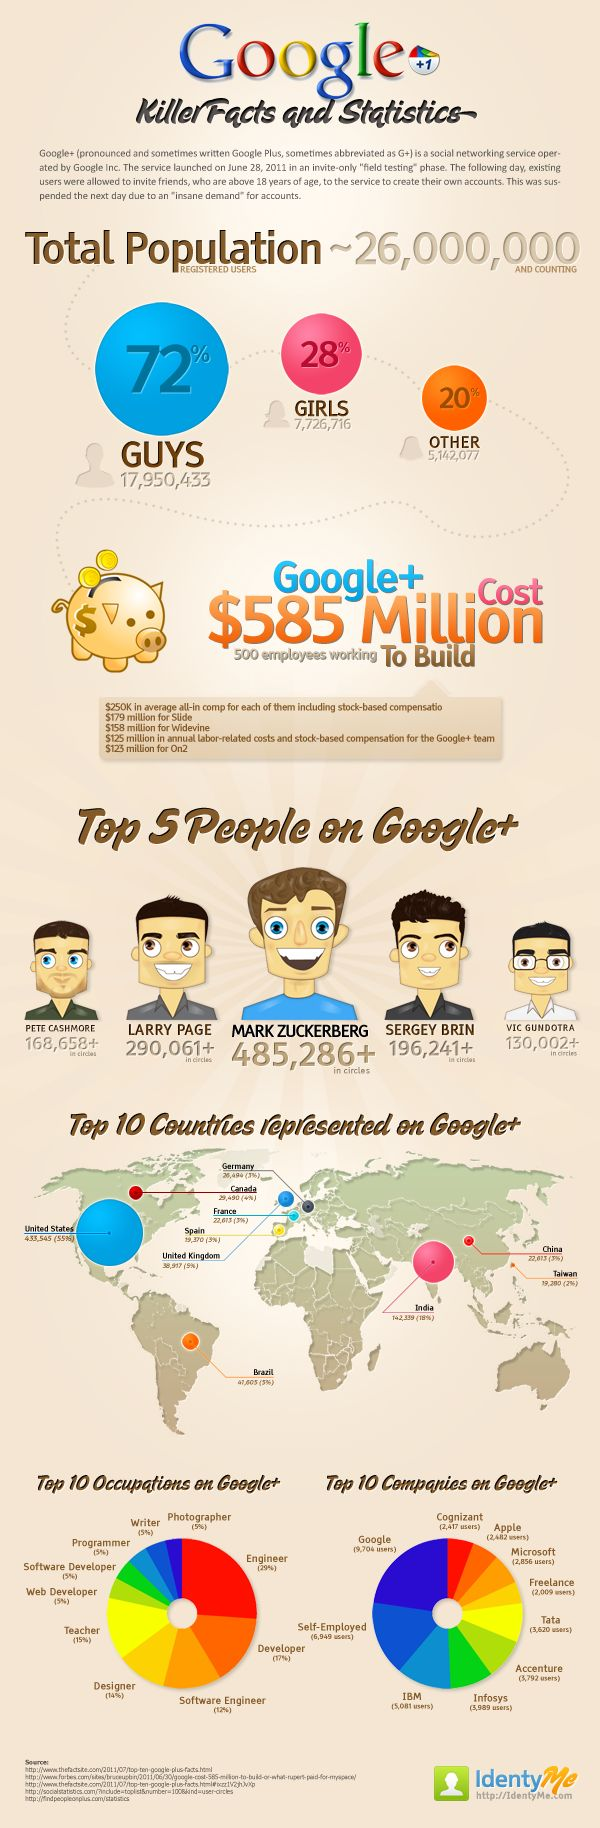 Nice Infographic about the Google+ usage.